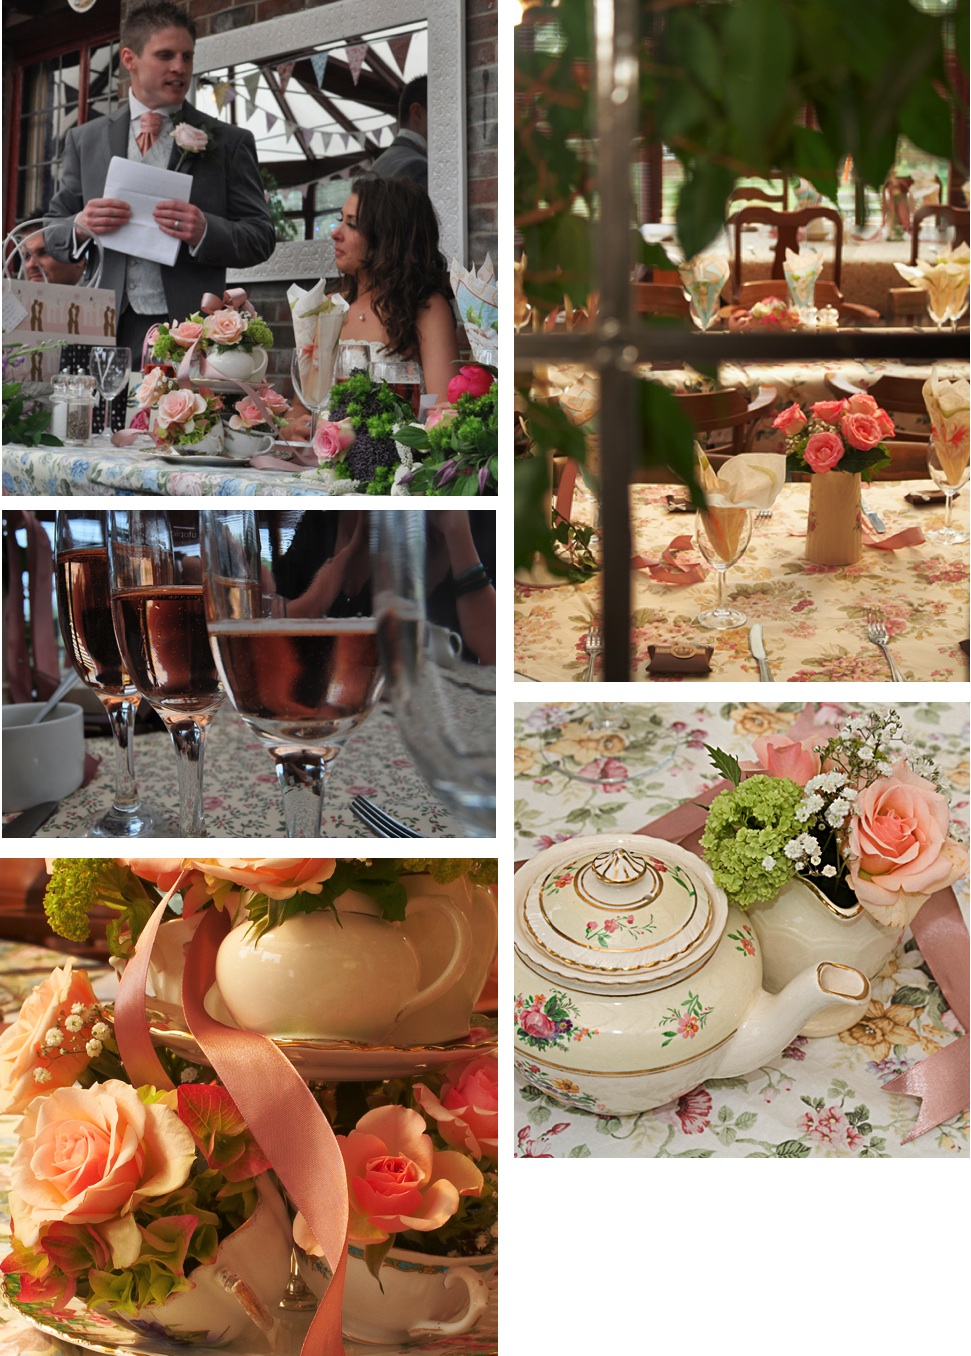 Wedding pictures vintage china, teapots, flowers and tablecloths